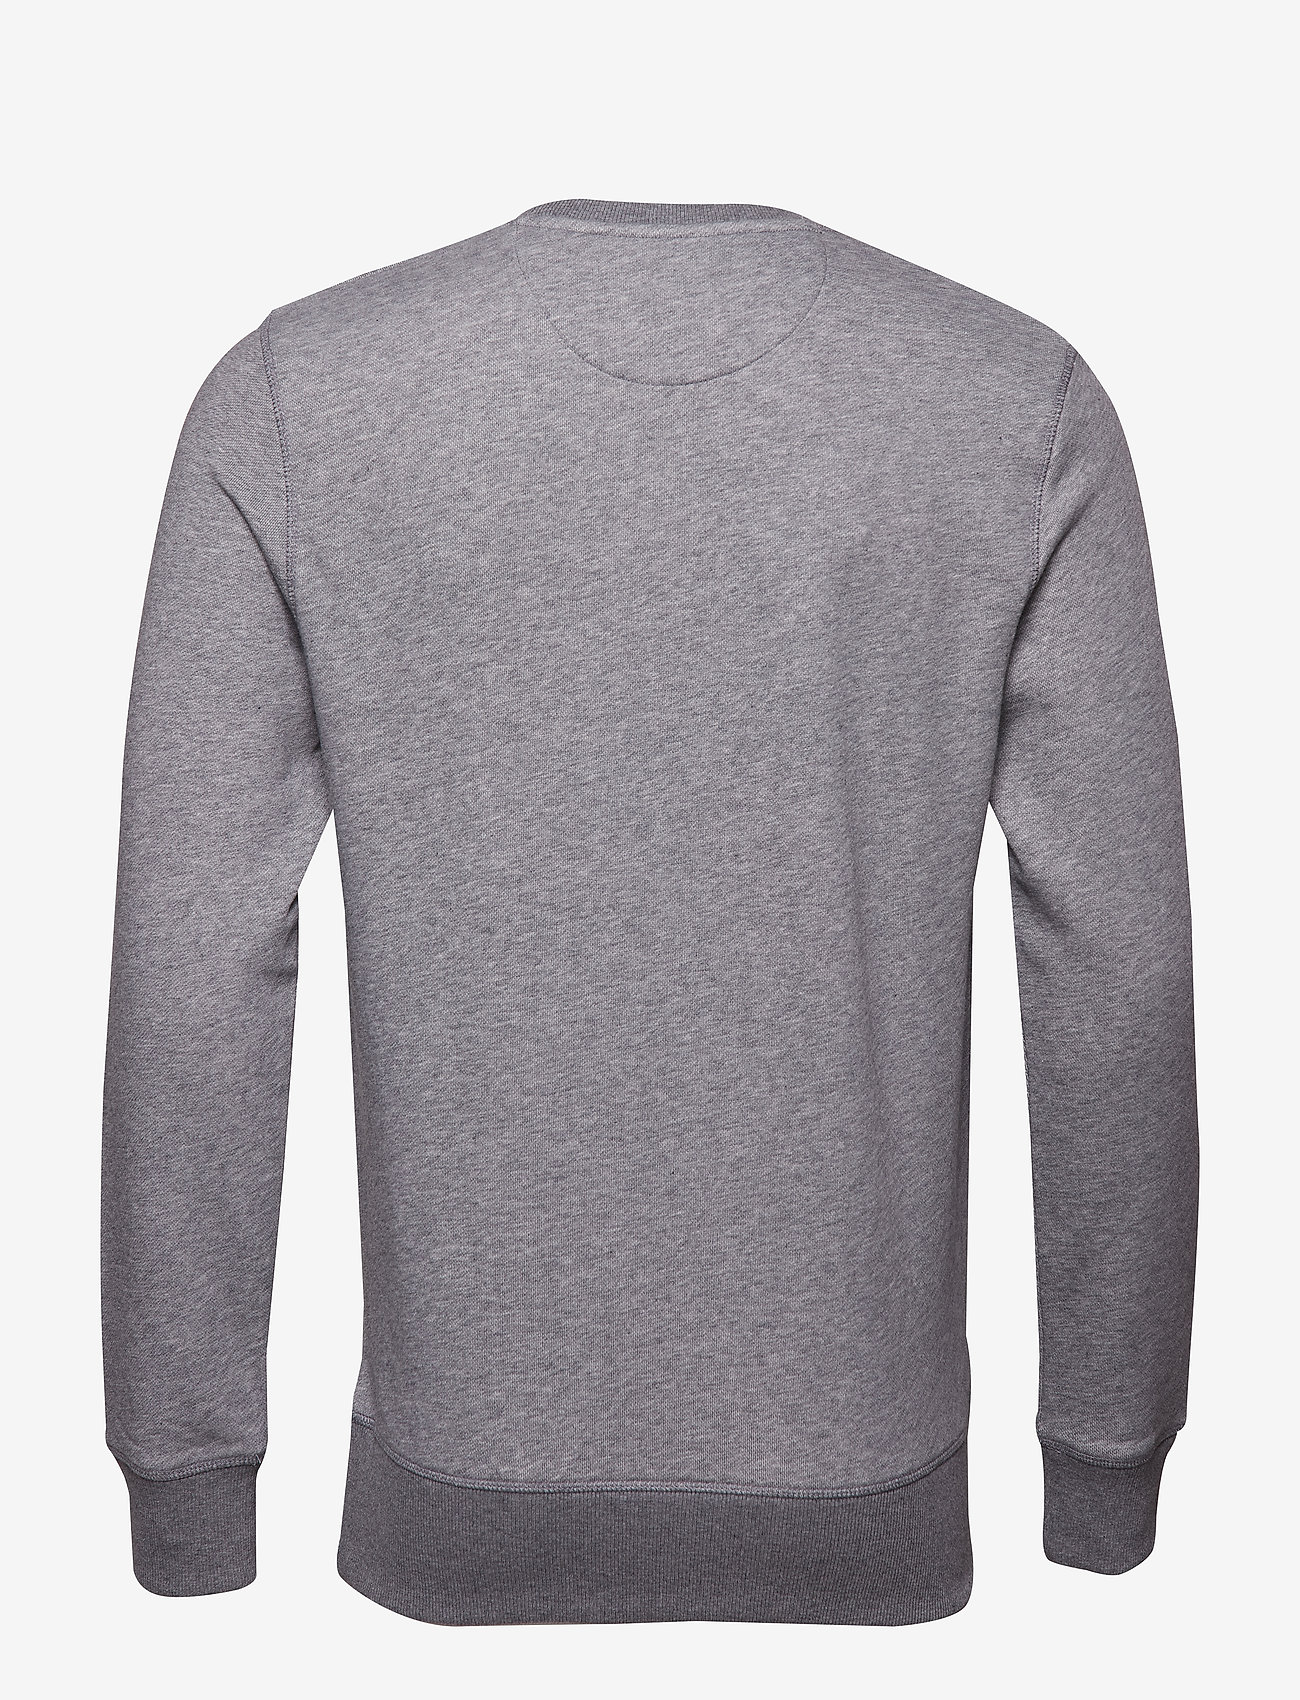 GANT - THE ORIGINAL C-NECK SWEAT - basic-sweatshirts - dark grey melange - 1